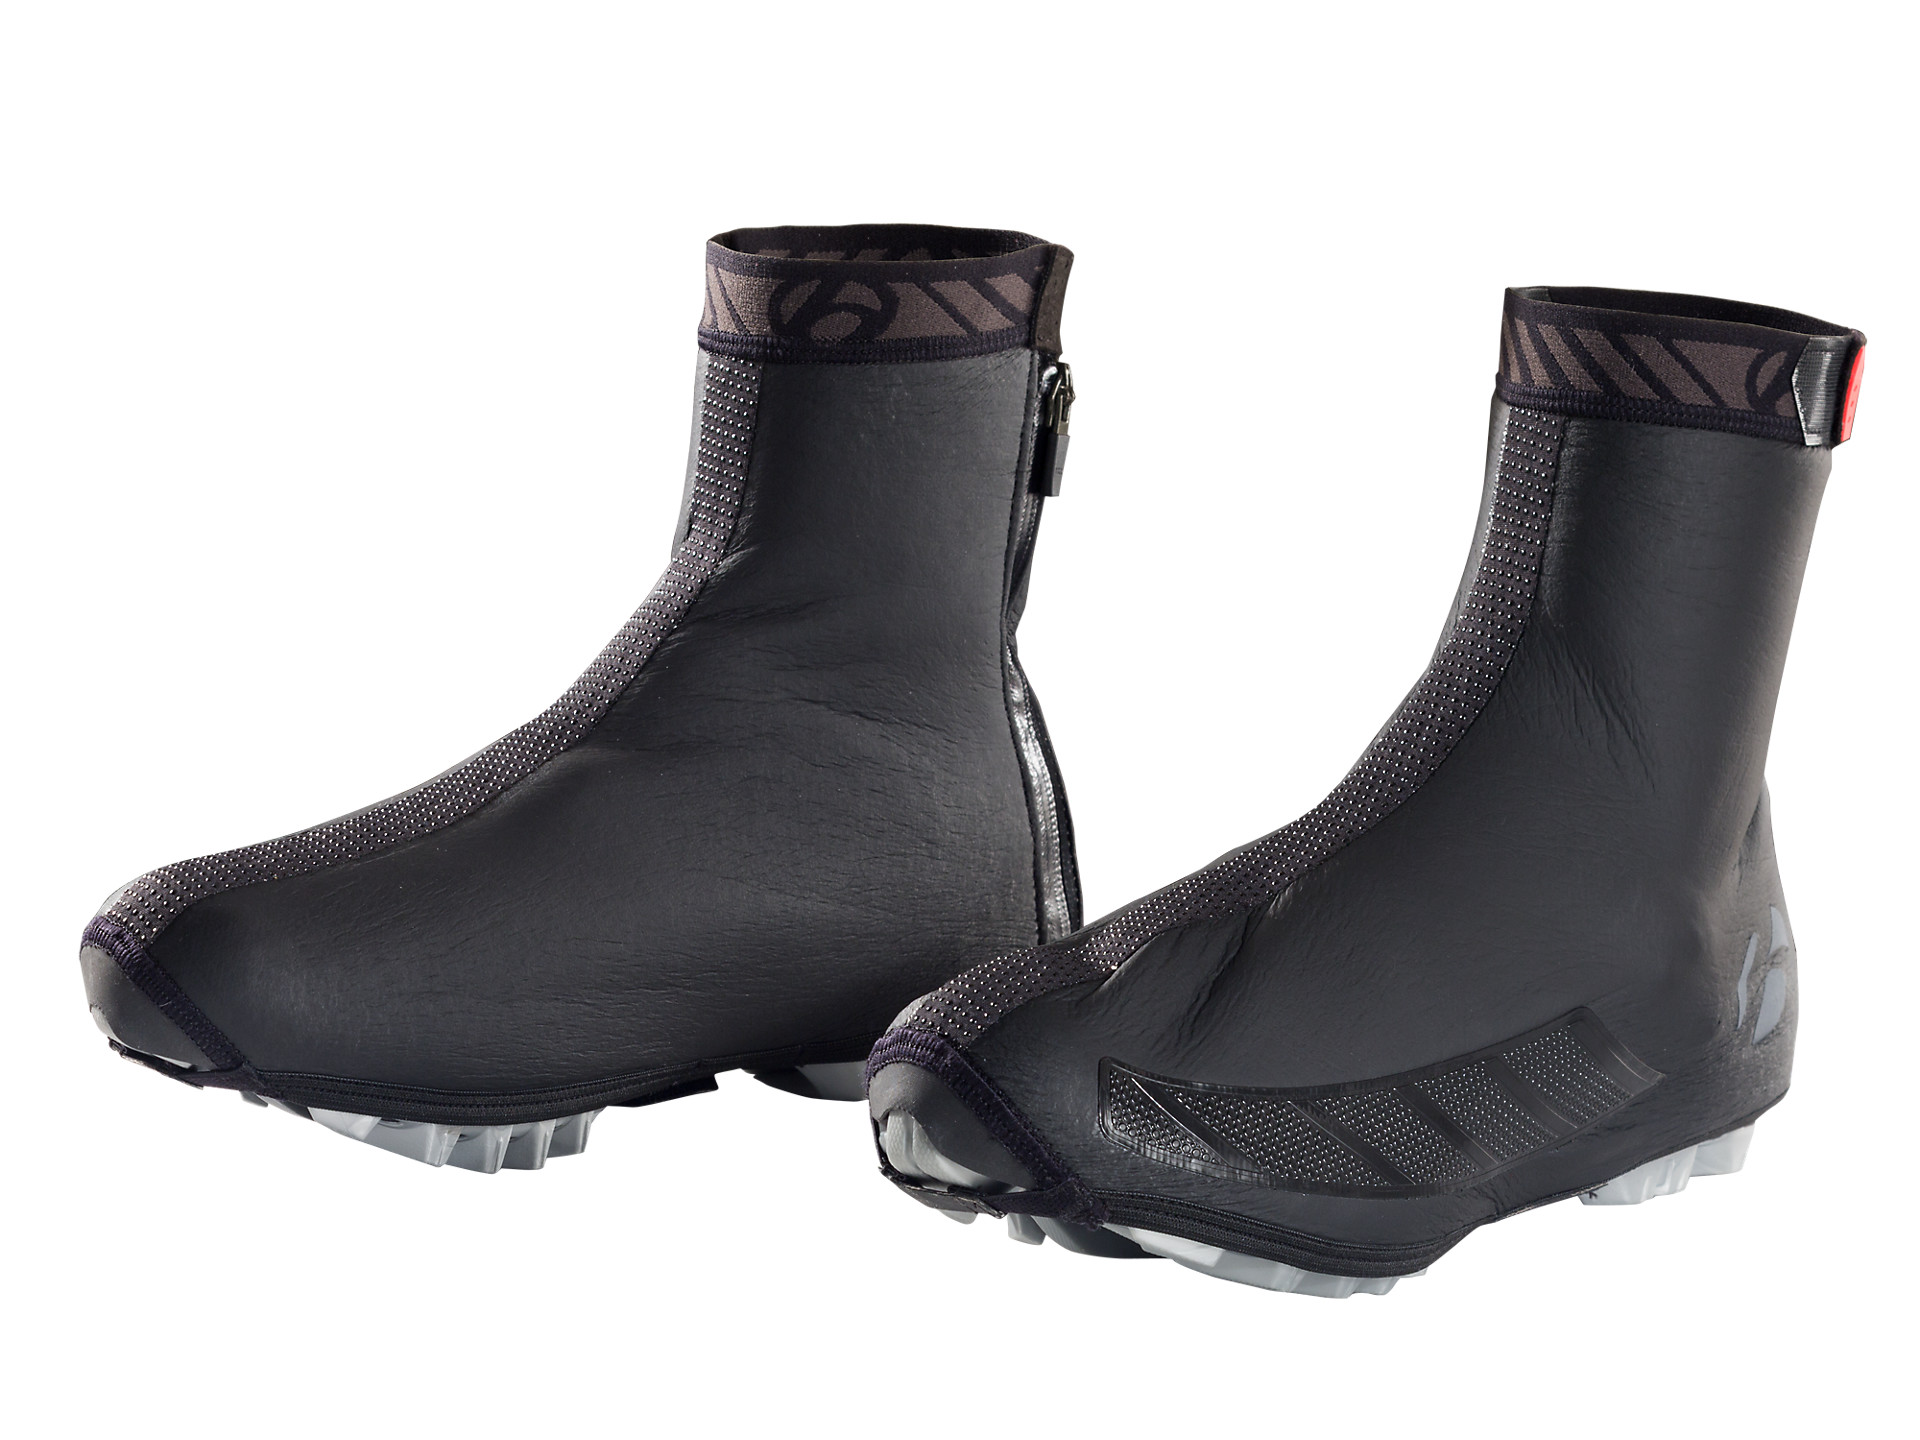 cf099b98ad6 Couvre-chaussures imperméables Bontrager RXL Softshell VTT